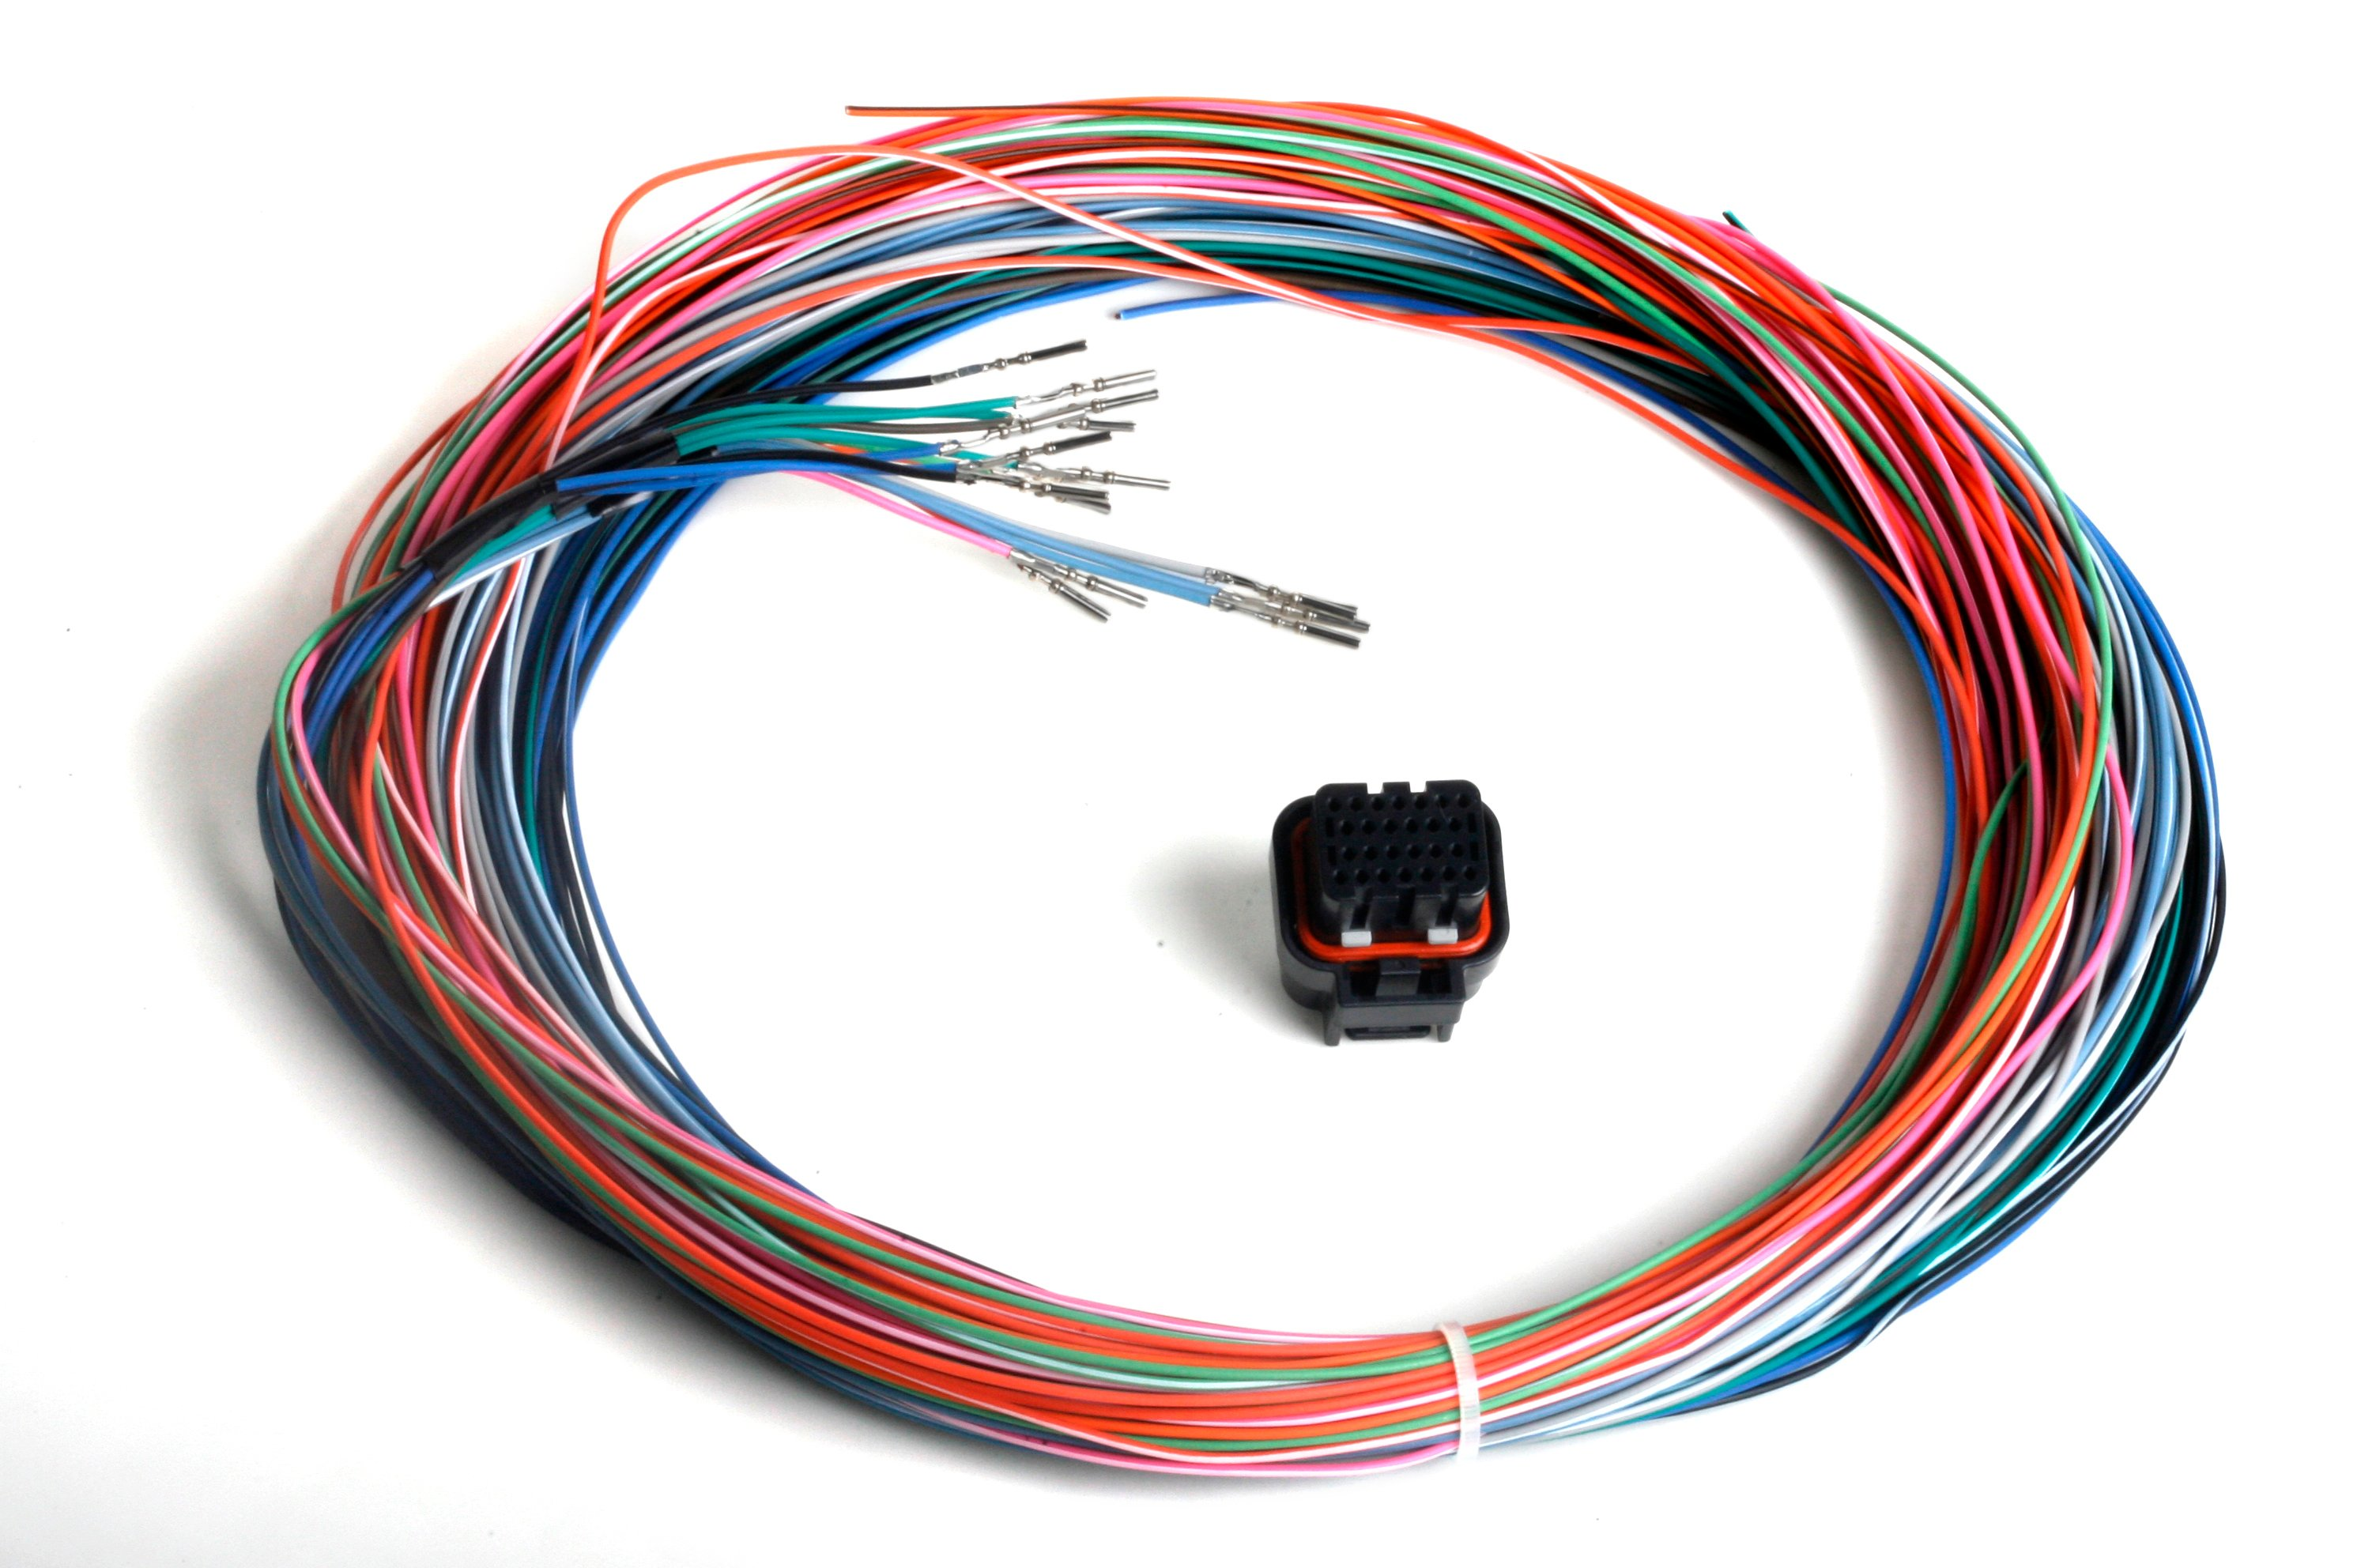 558 402 holley efi 558 402 dominator efi auxiliary harness holley ls wiring harness at bakdesigns.co